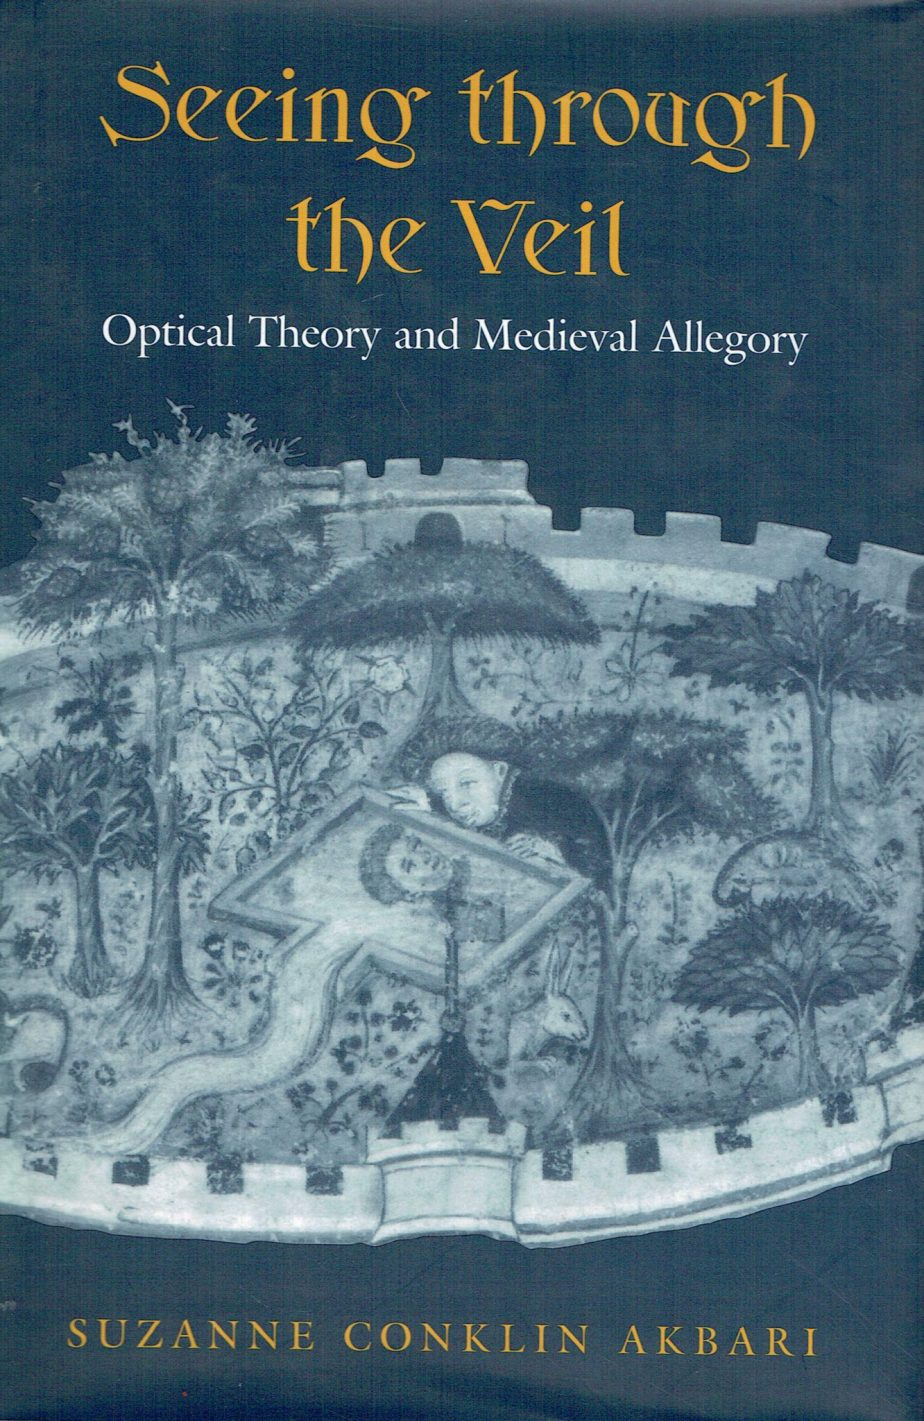 Seeing through the veil : optical theory and medieval allegory